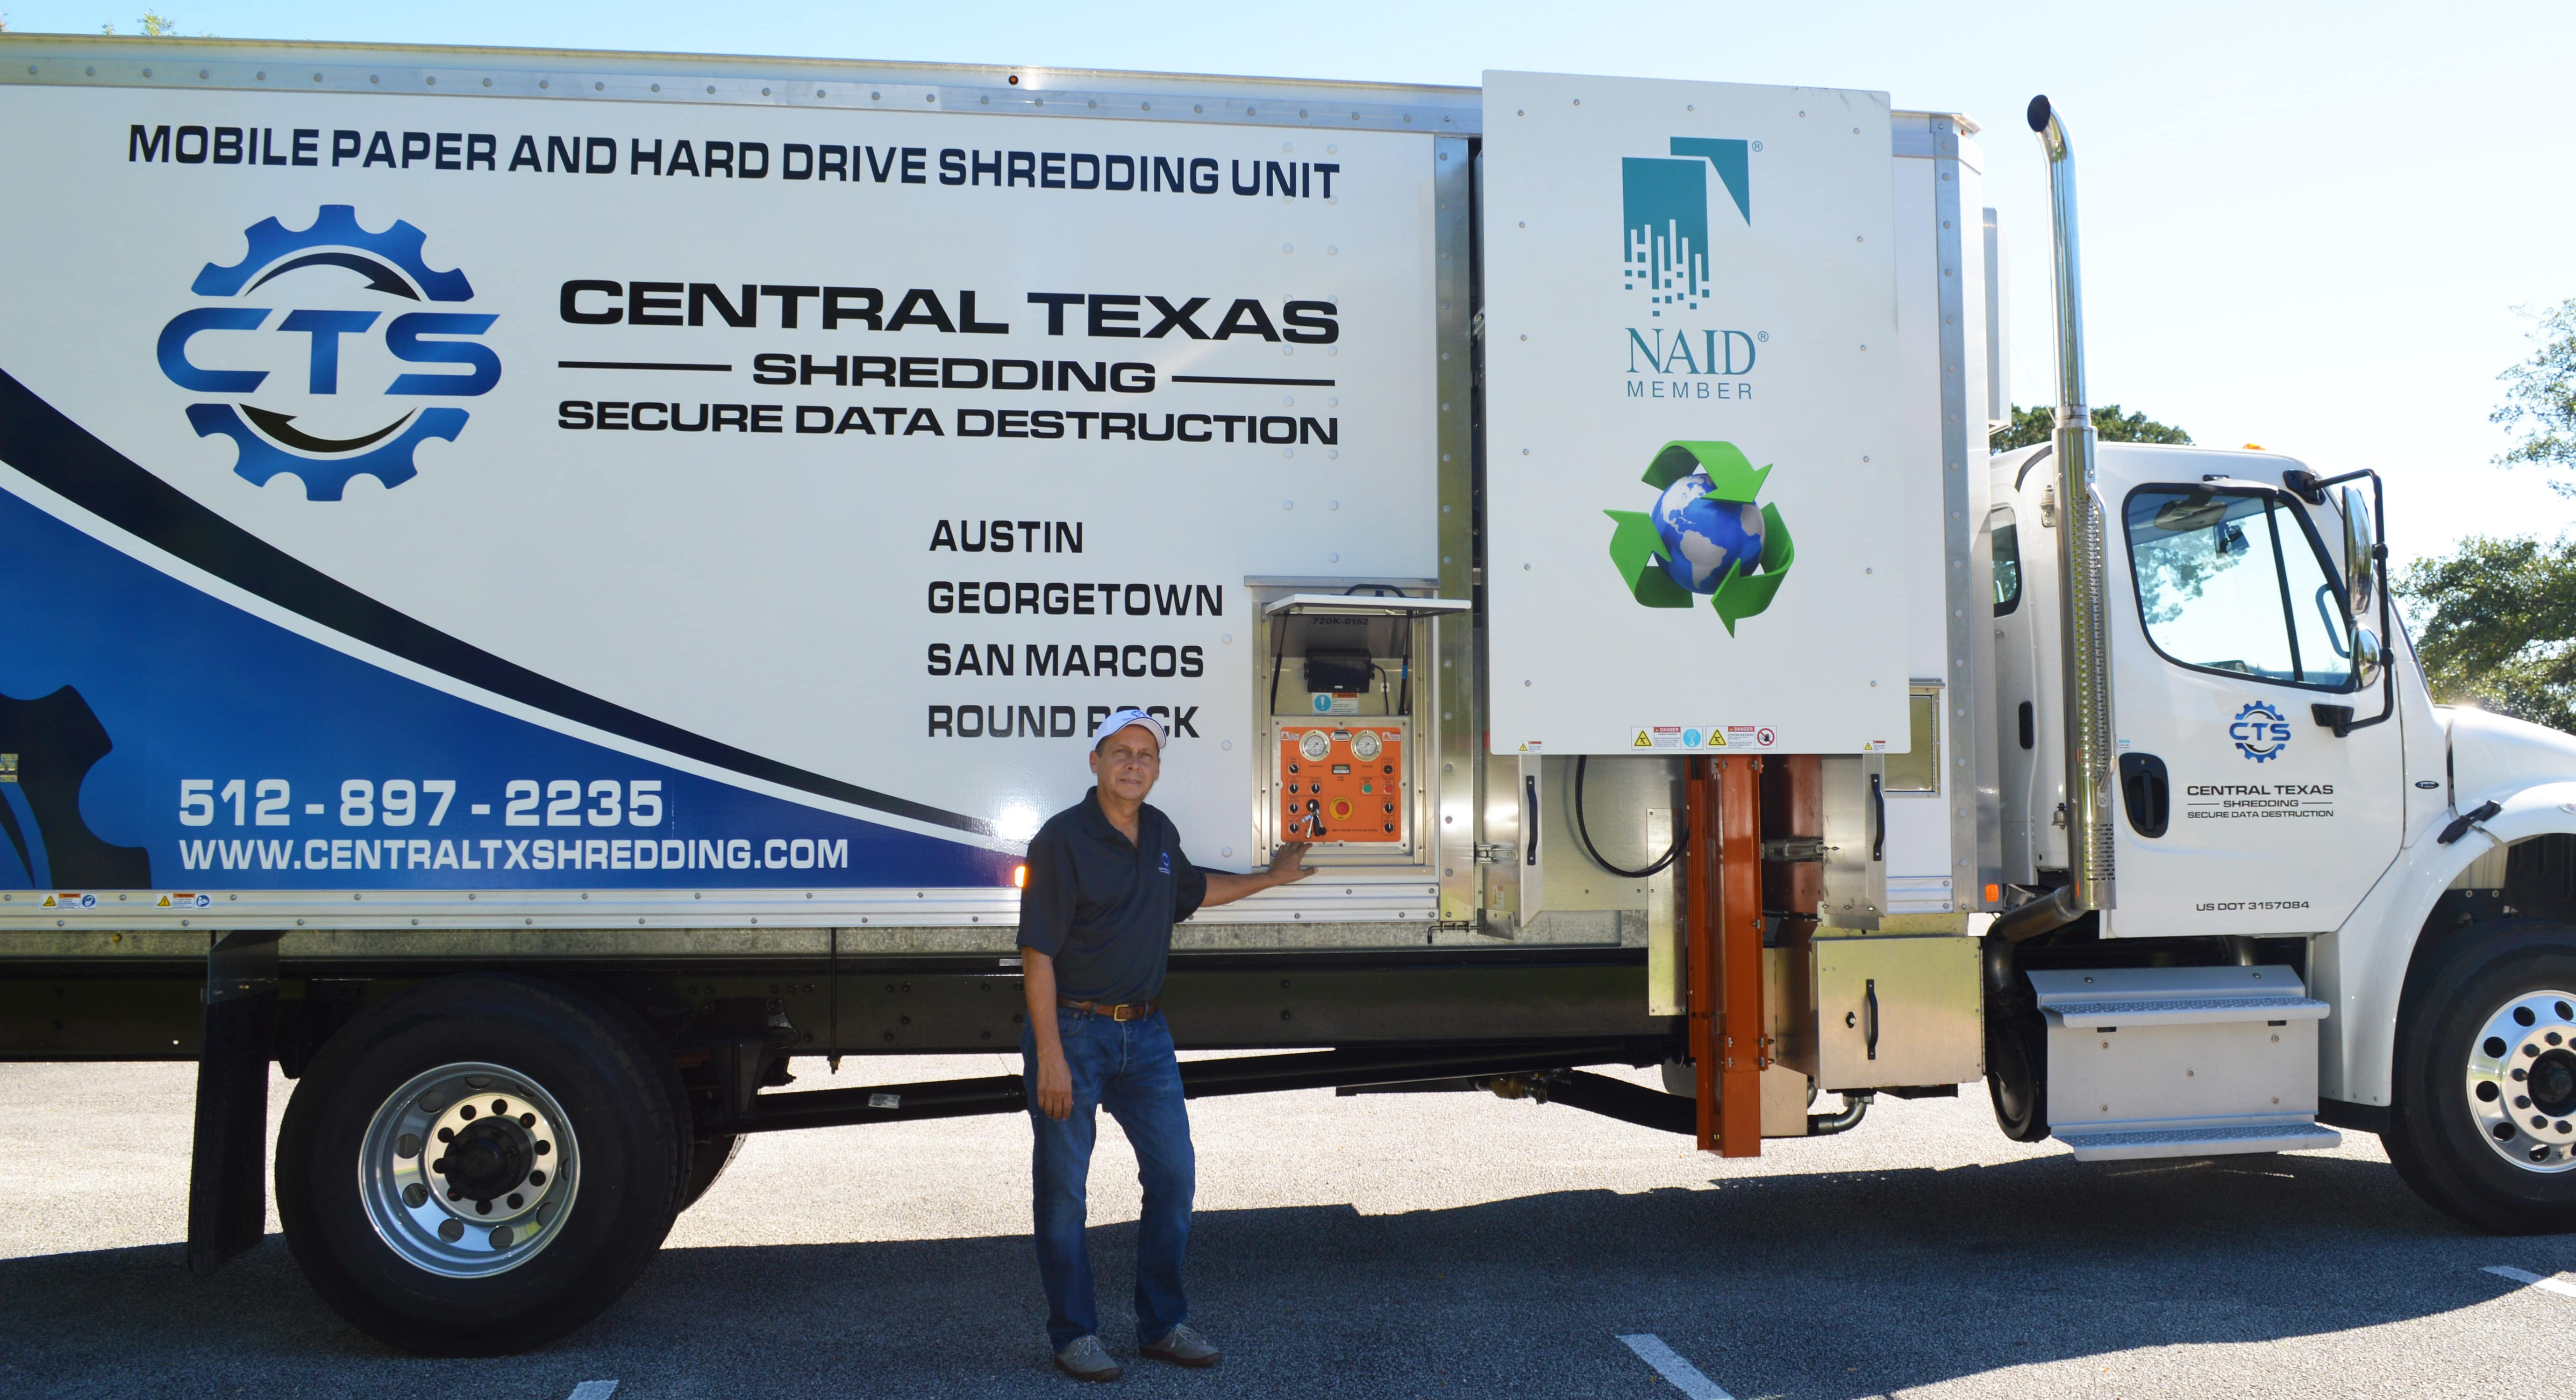 Central Texas Shred Truck in Austin area